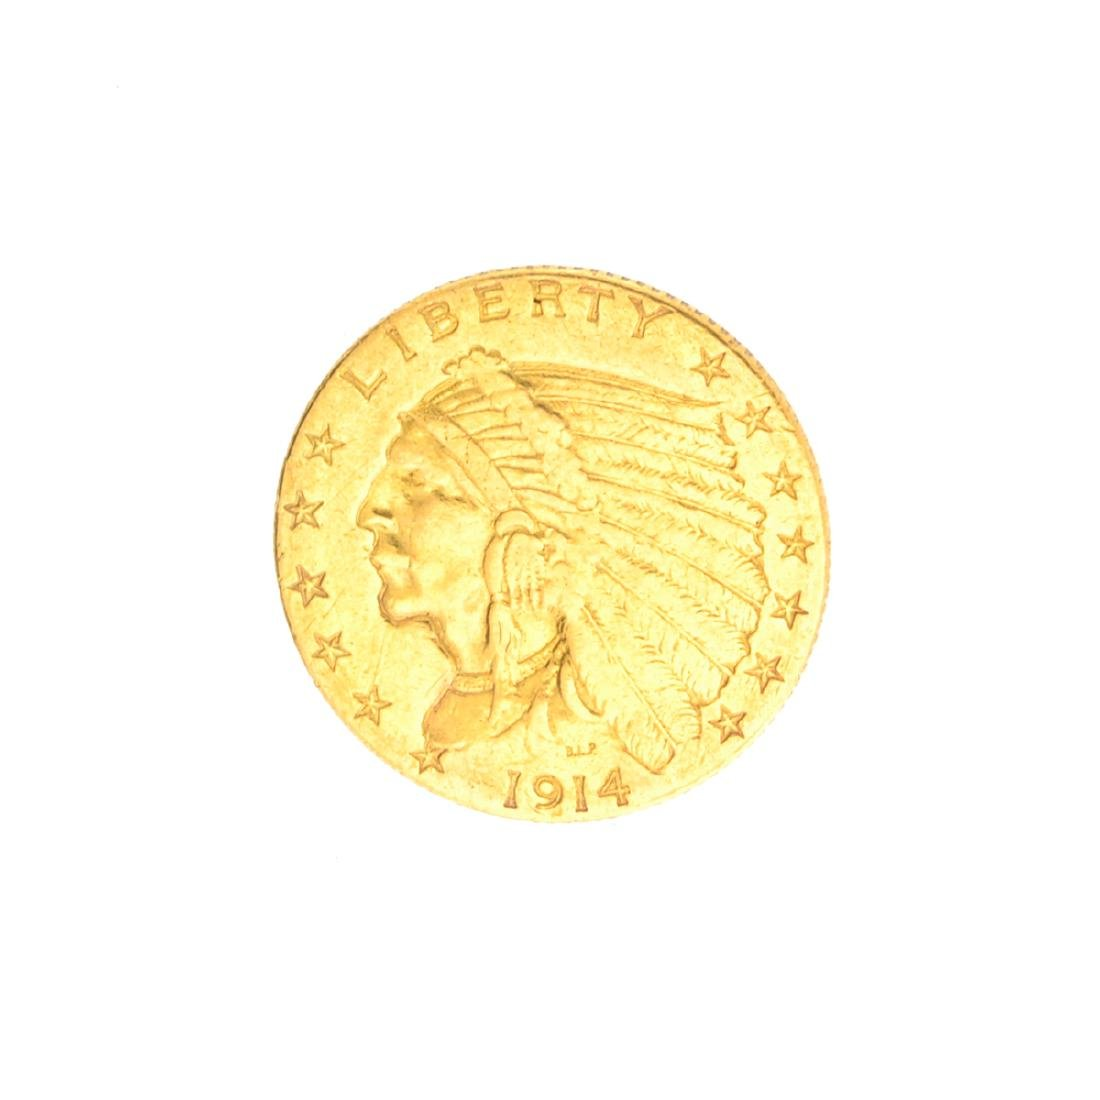 Very Rare 1914-D $2.50 U.S. Indian Head Gold Coin Great